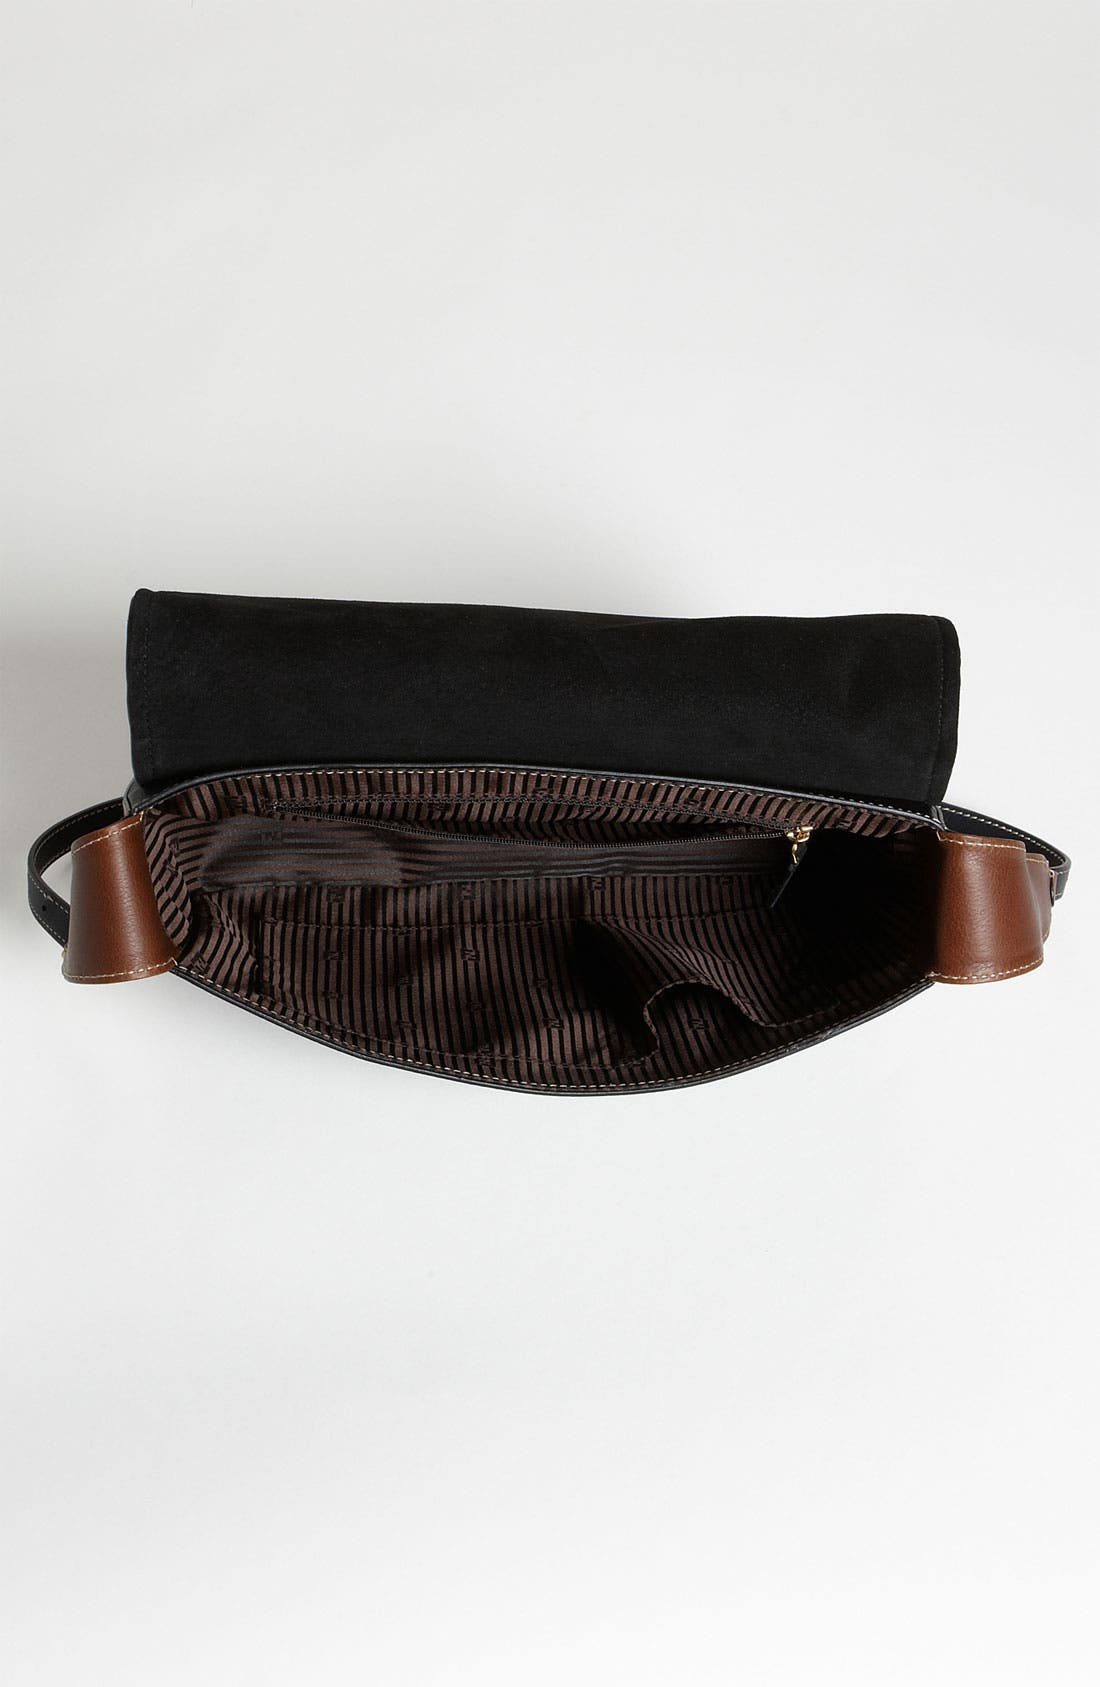 'Chameleon' Leather Shoulder Bag,                             Alternate thumbnail 4, color,                             001